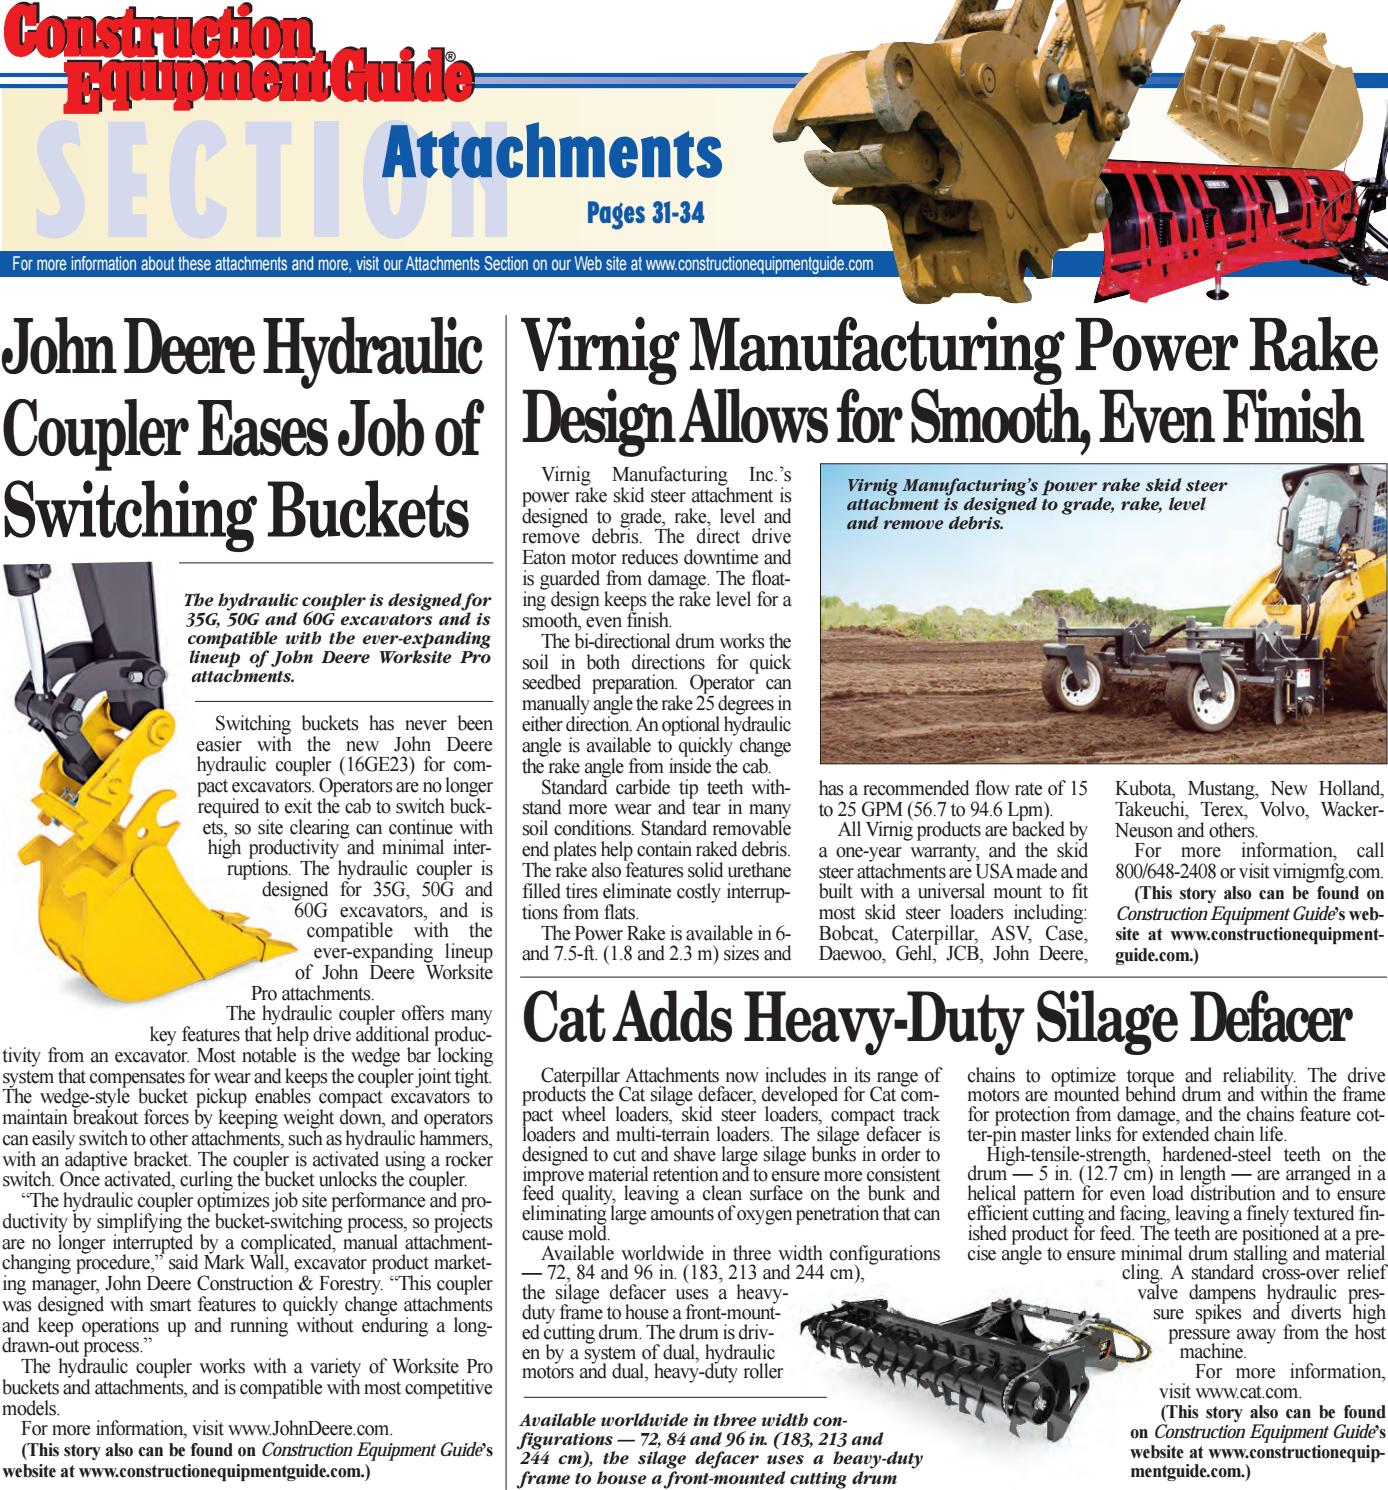 Midwest 5 March 13,2017 by Construction Equipment Guide - issuu